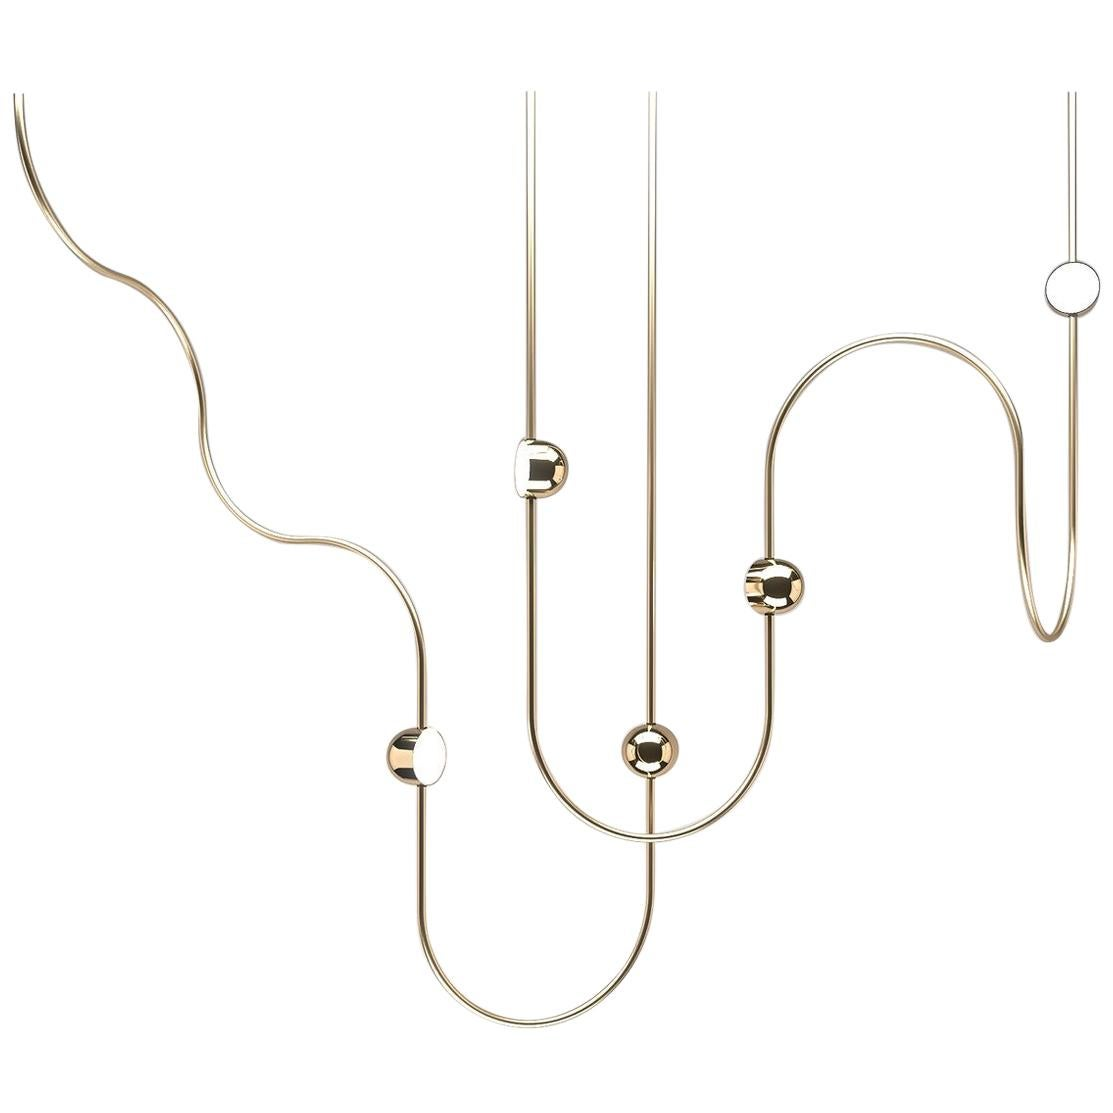 Dia Contemporary LED Chandelier, Config. 3, Solid Brass, Handmade/finished, Art